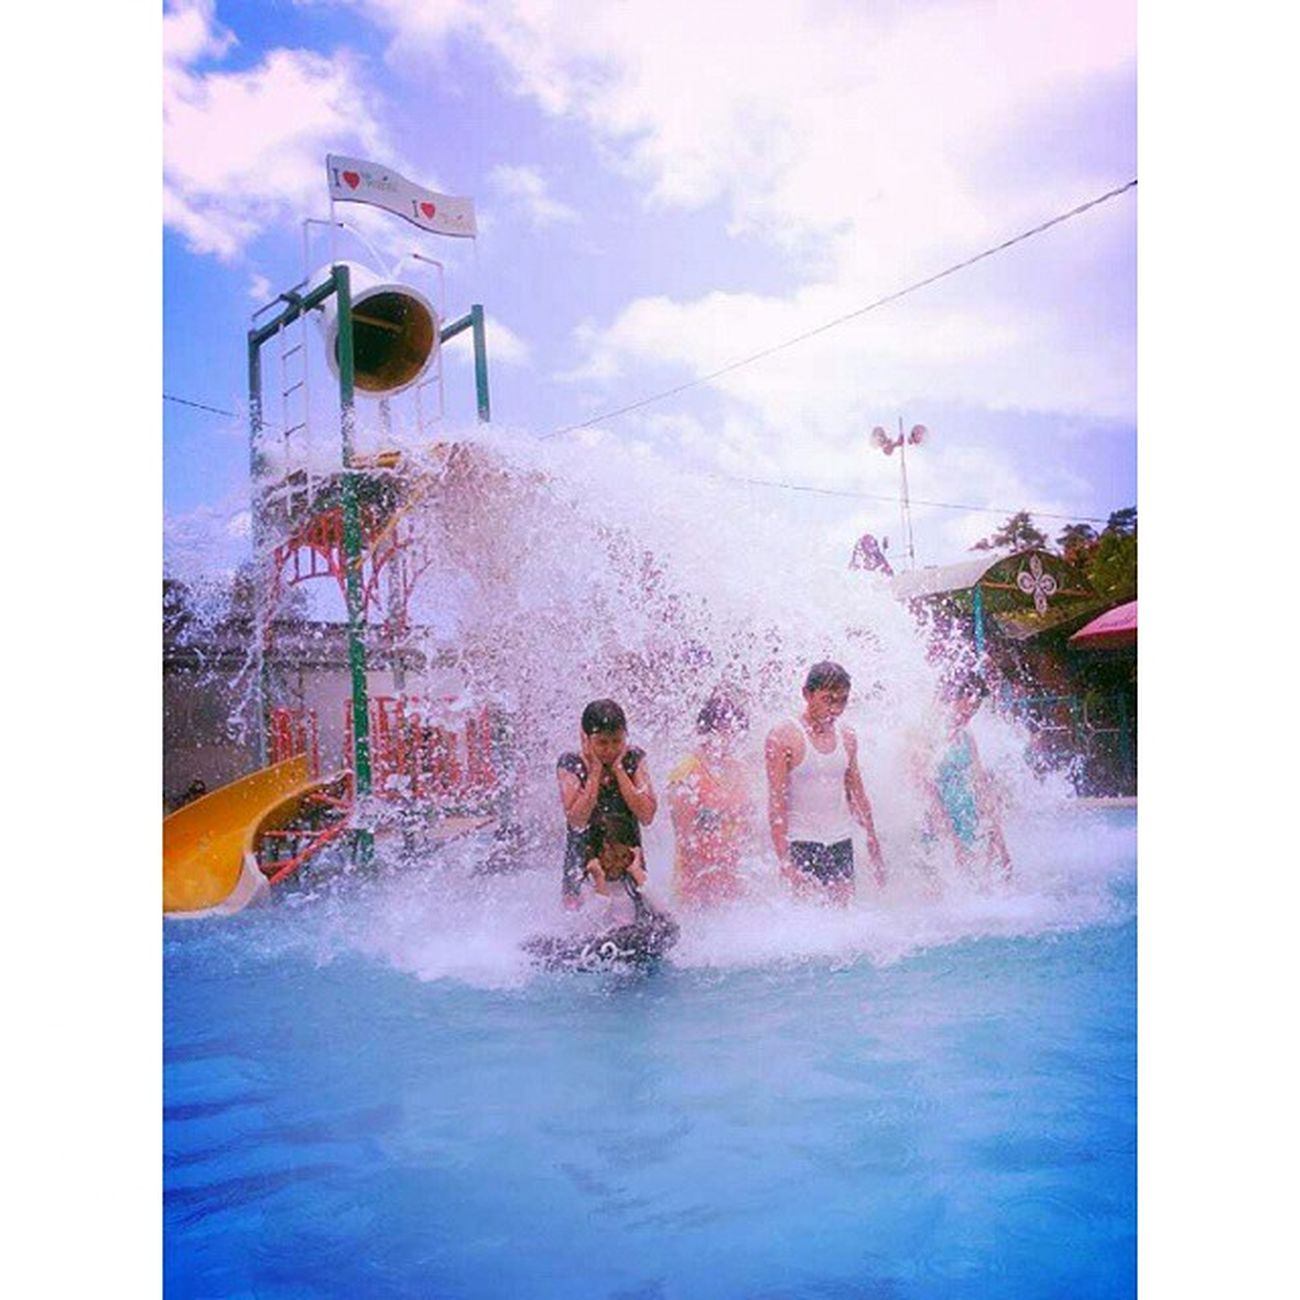 HotWater Water Splash Waterboom nature family vacation ciwalini ciwidey